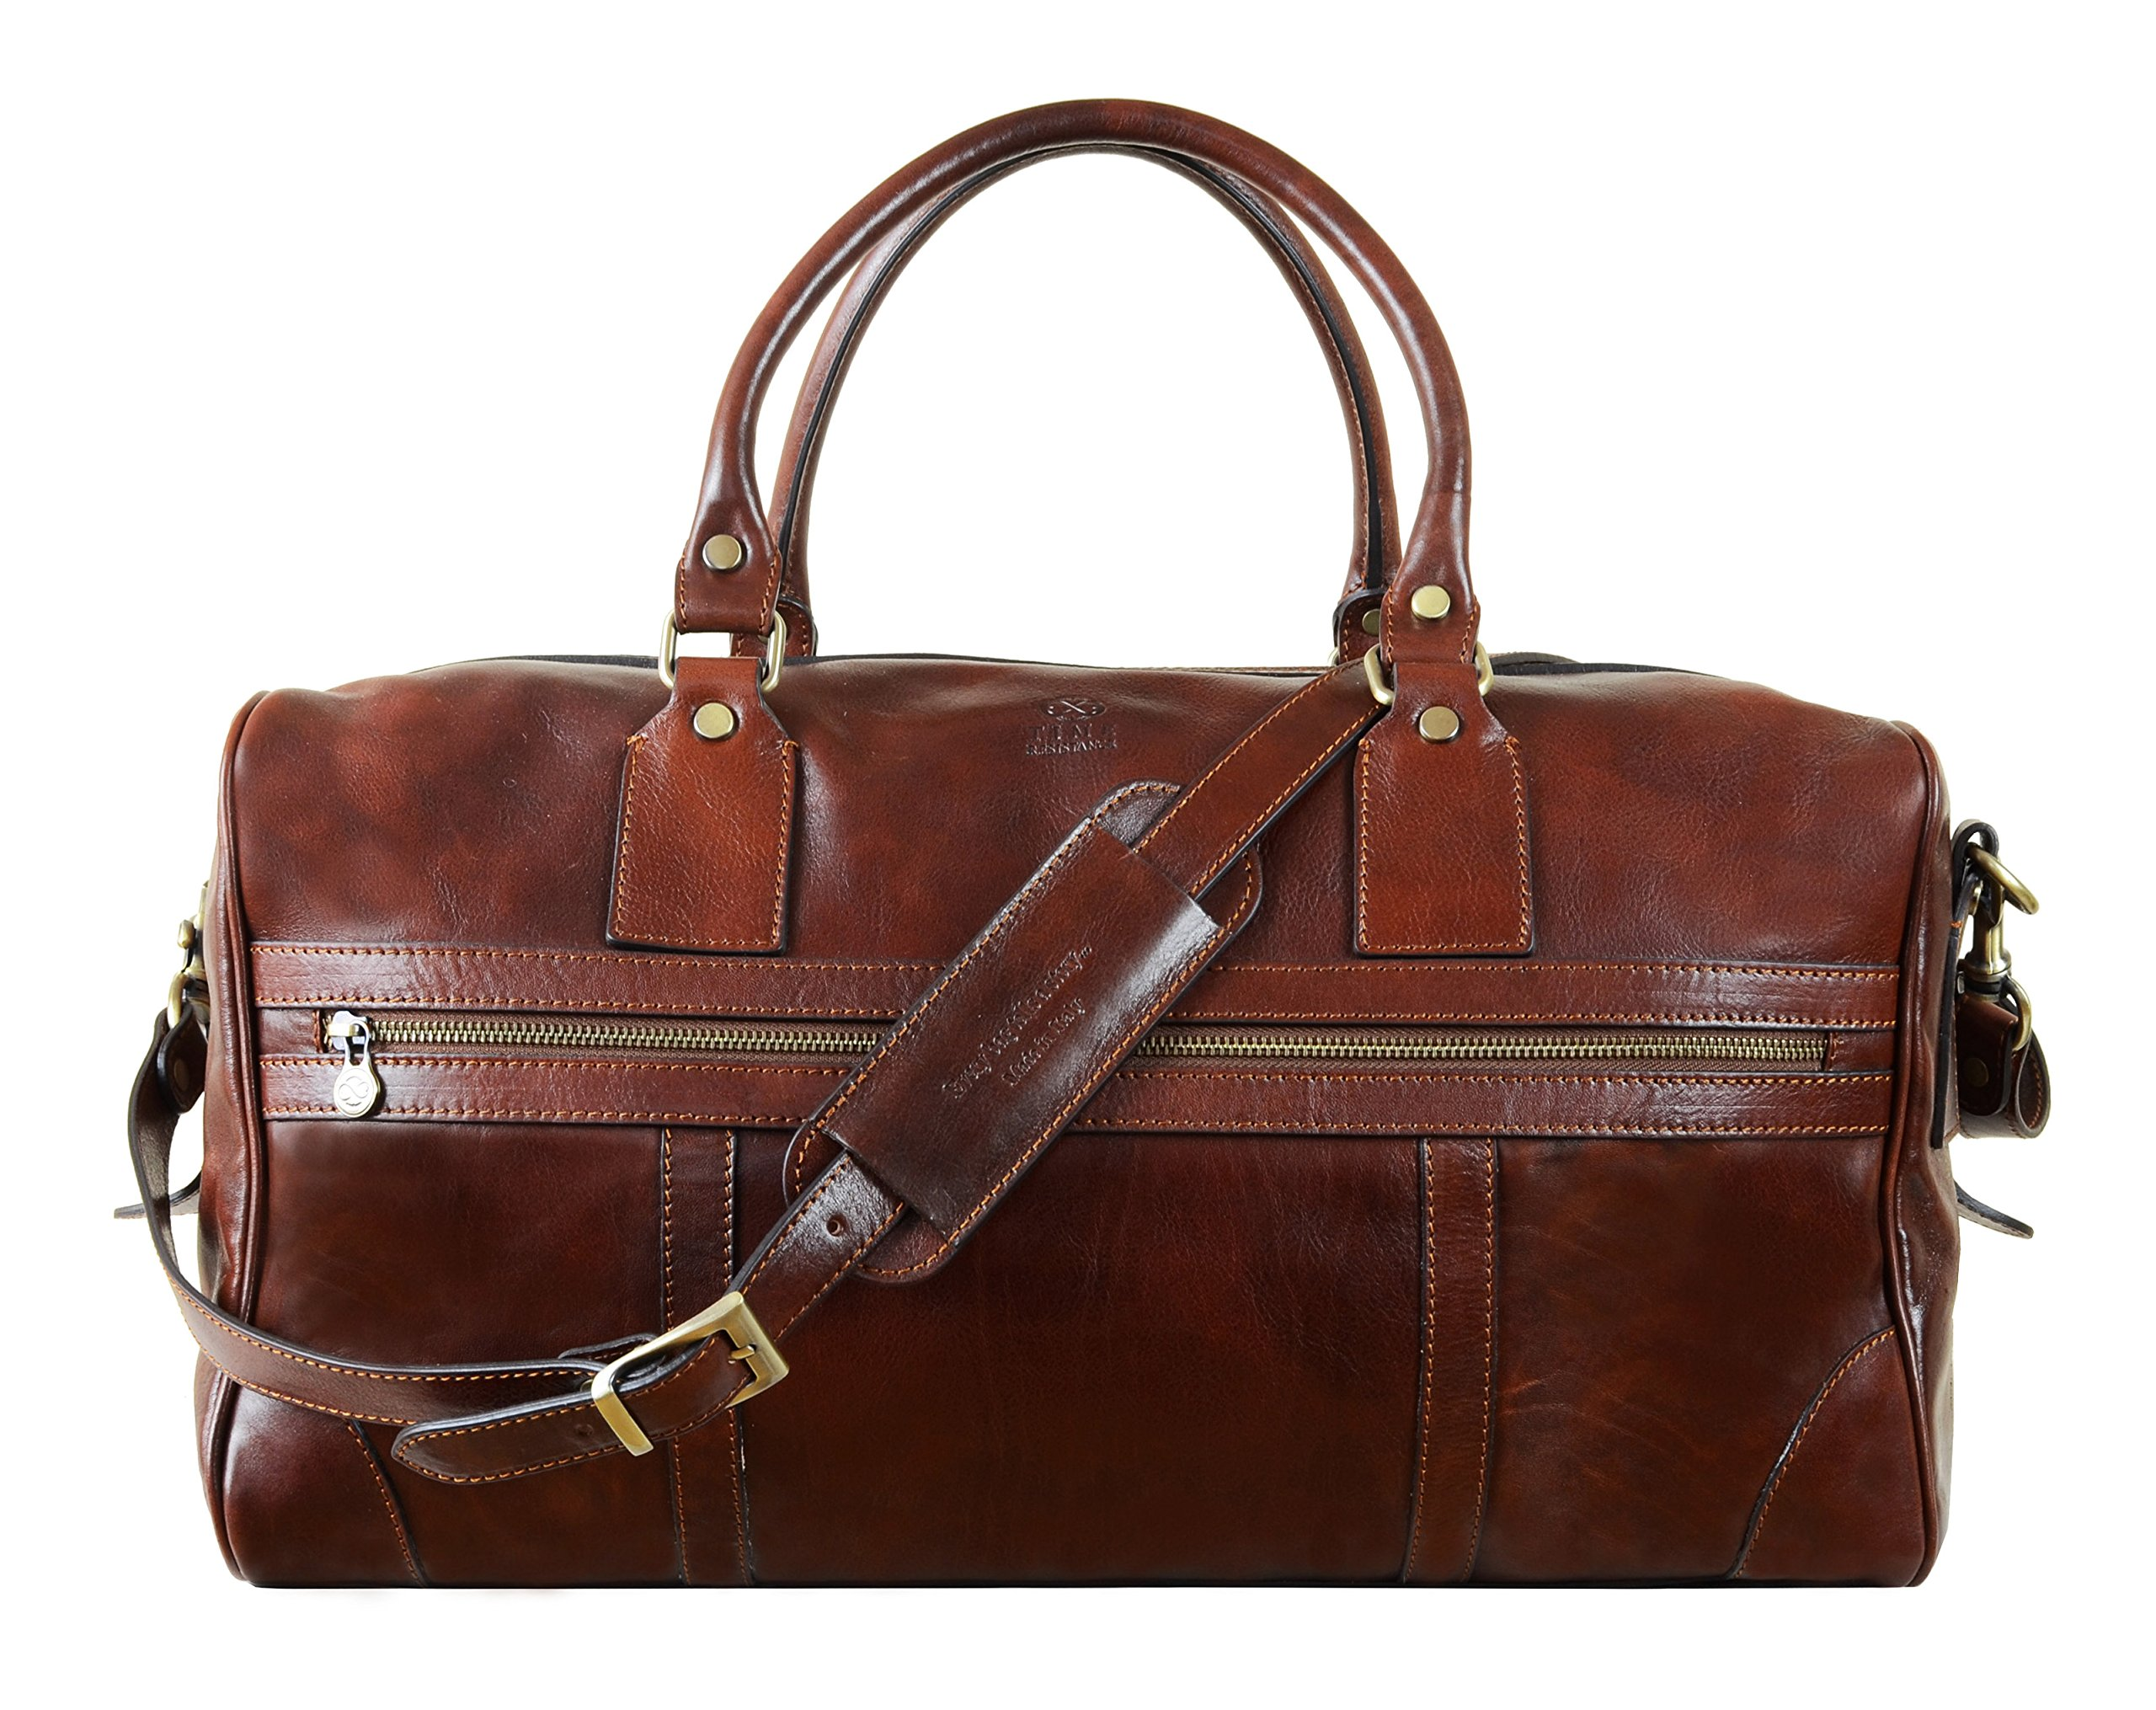 Leather Duffel Bag, Travel Bag, Sports Duffel Bag, Overnight Weekender Bag Brown - Time Resistance